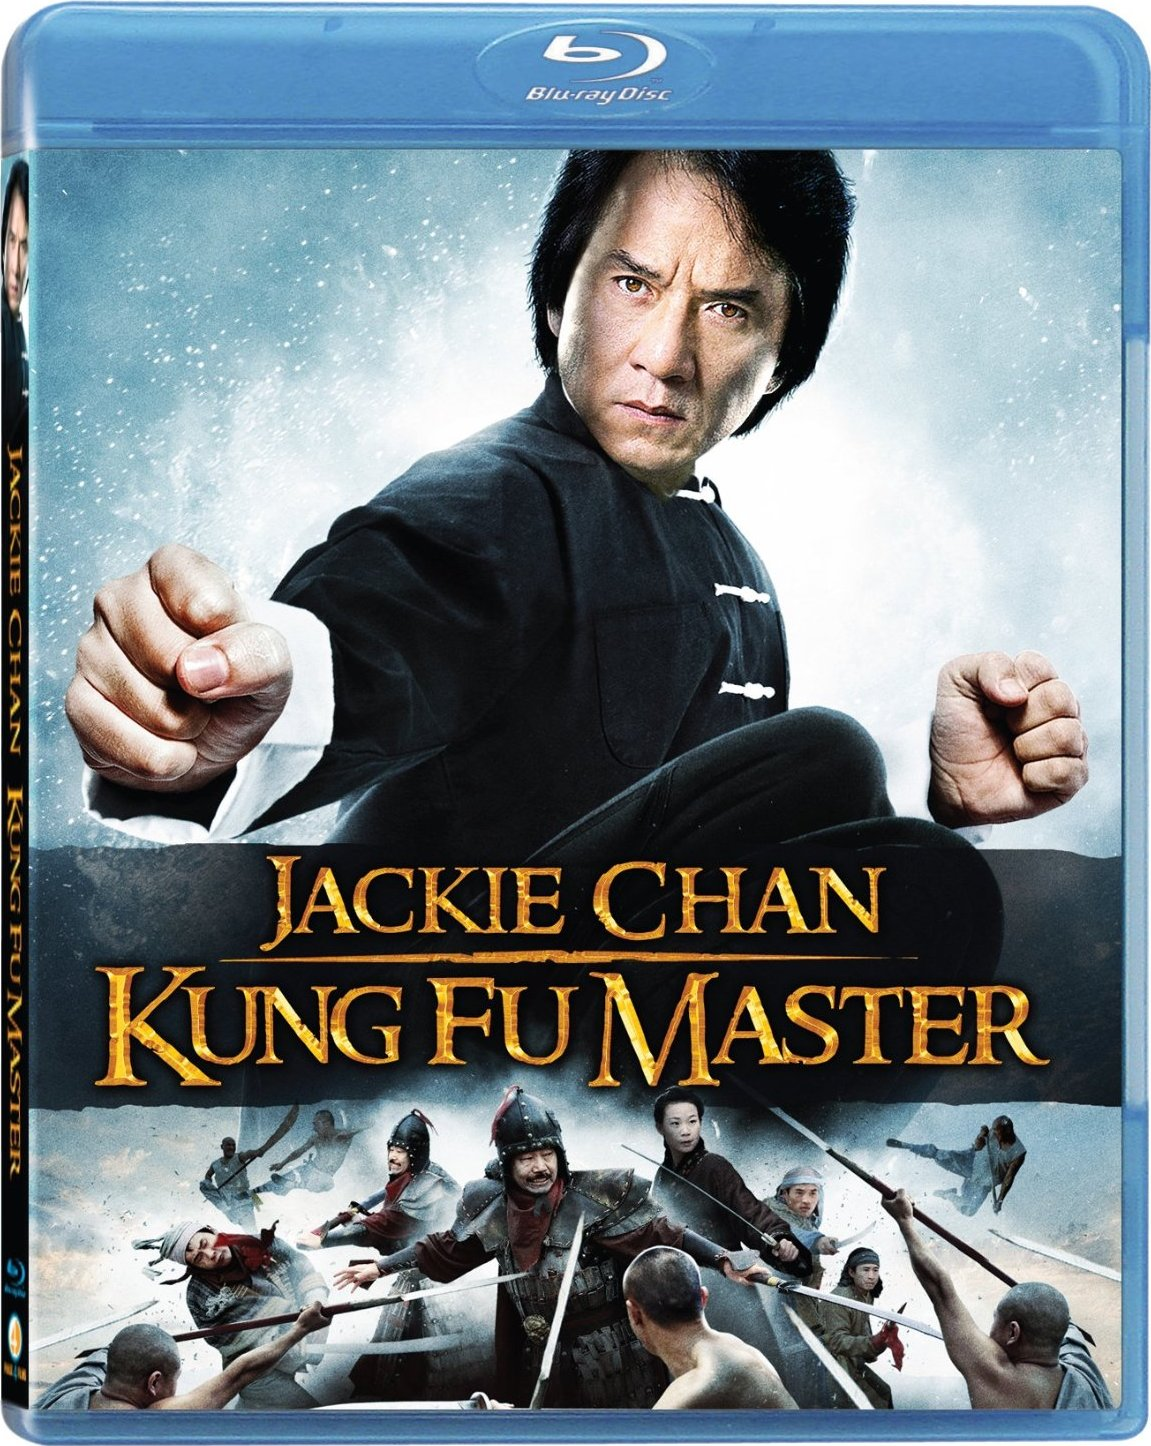 Jackie chan wallpaper (34 images) pictures download.